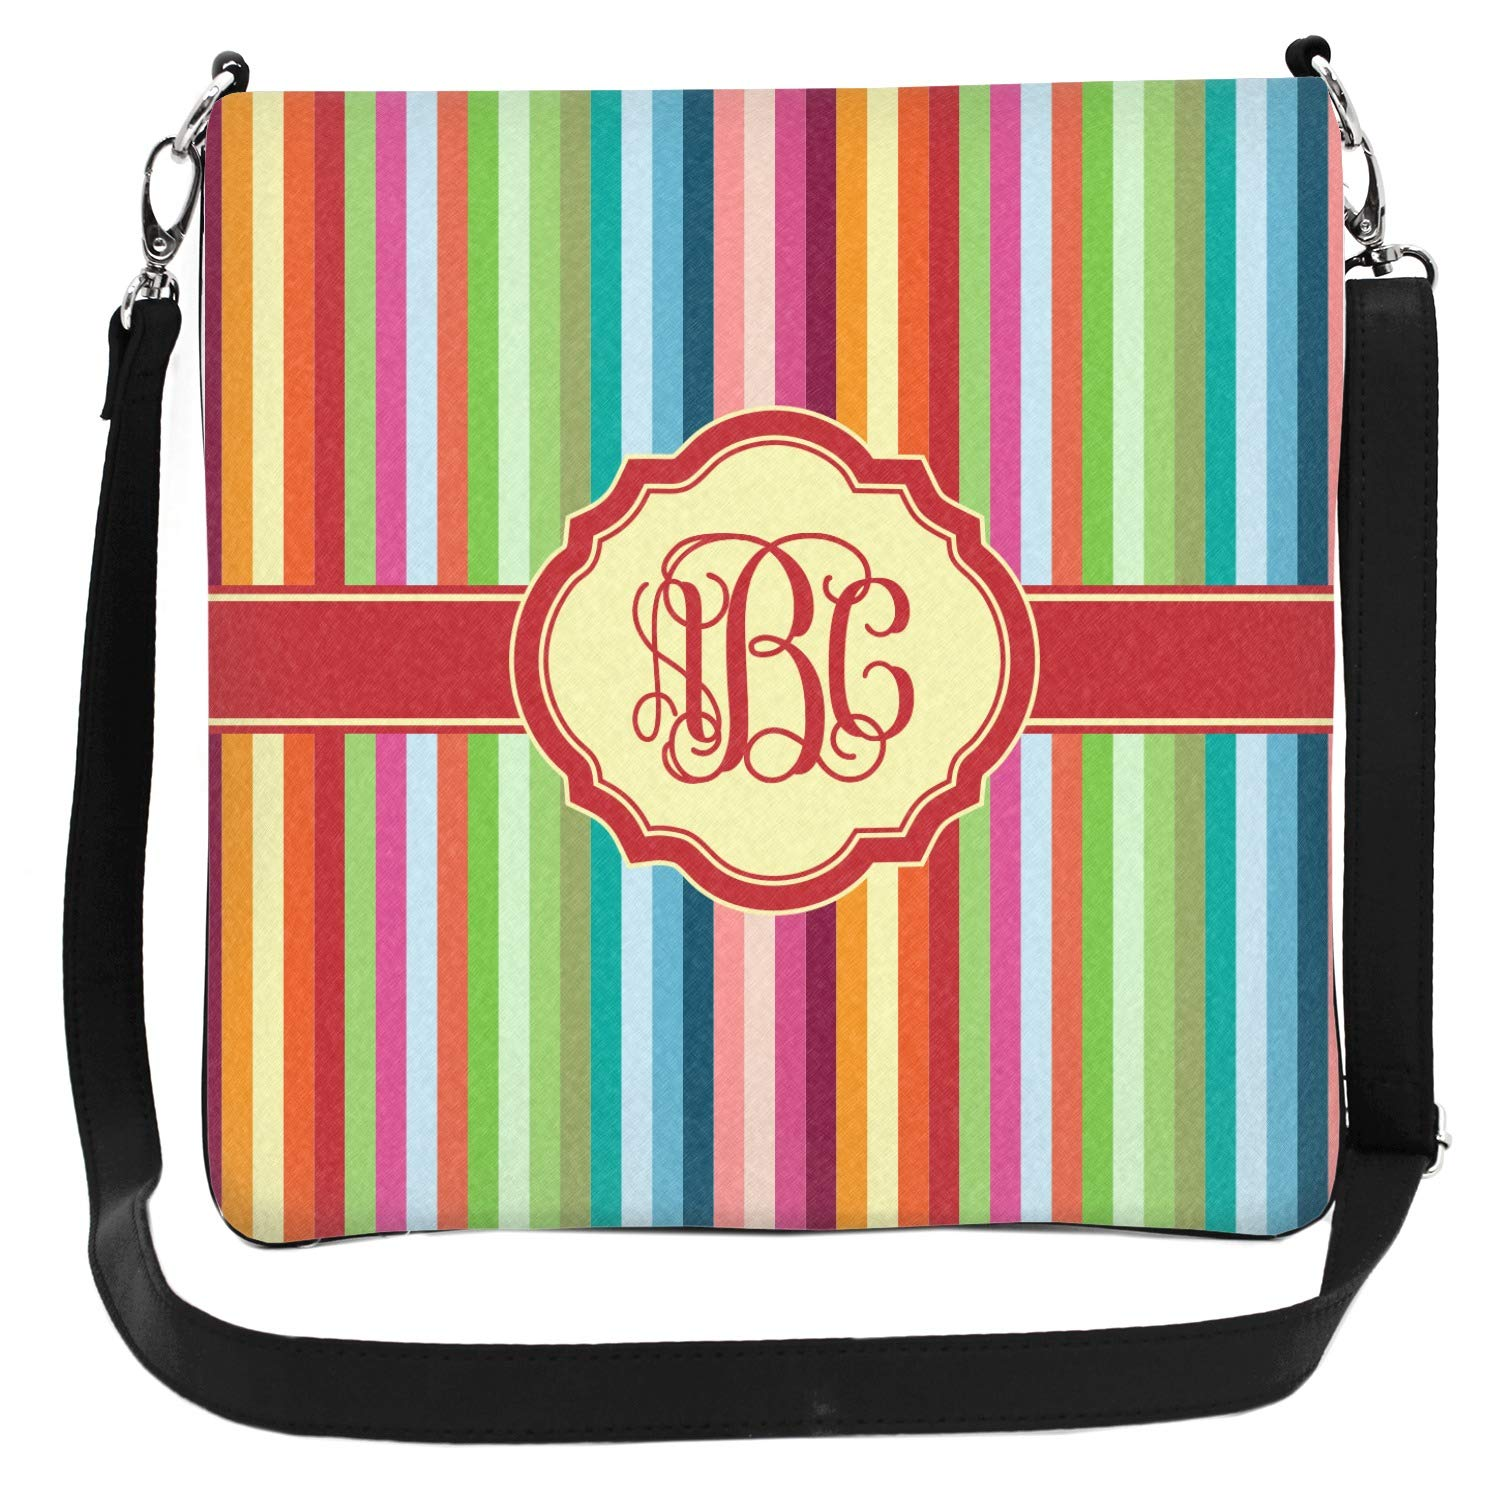 Personalized 2 Sizes Retro Vertical Stripes Cross Body Bag